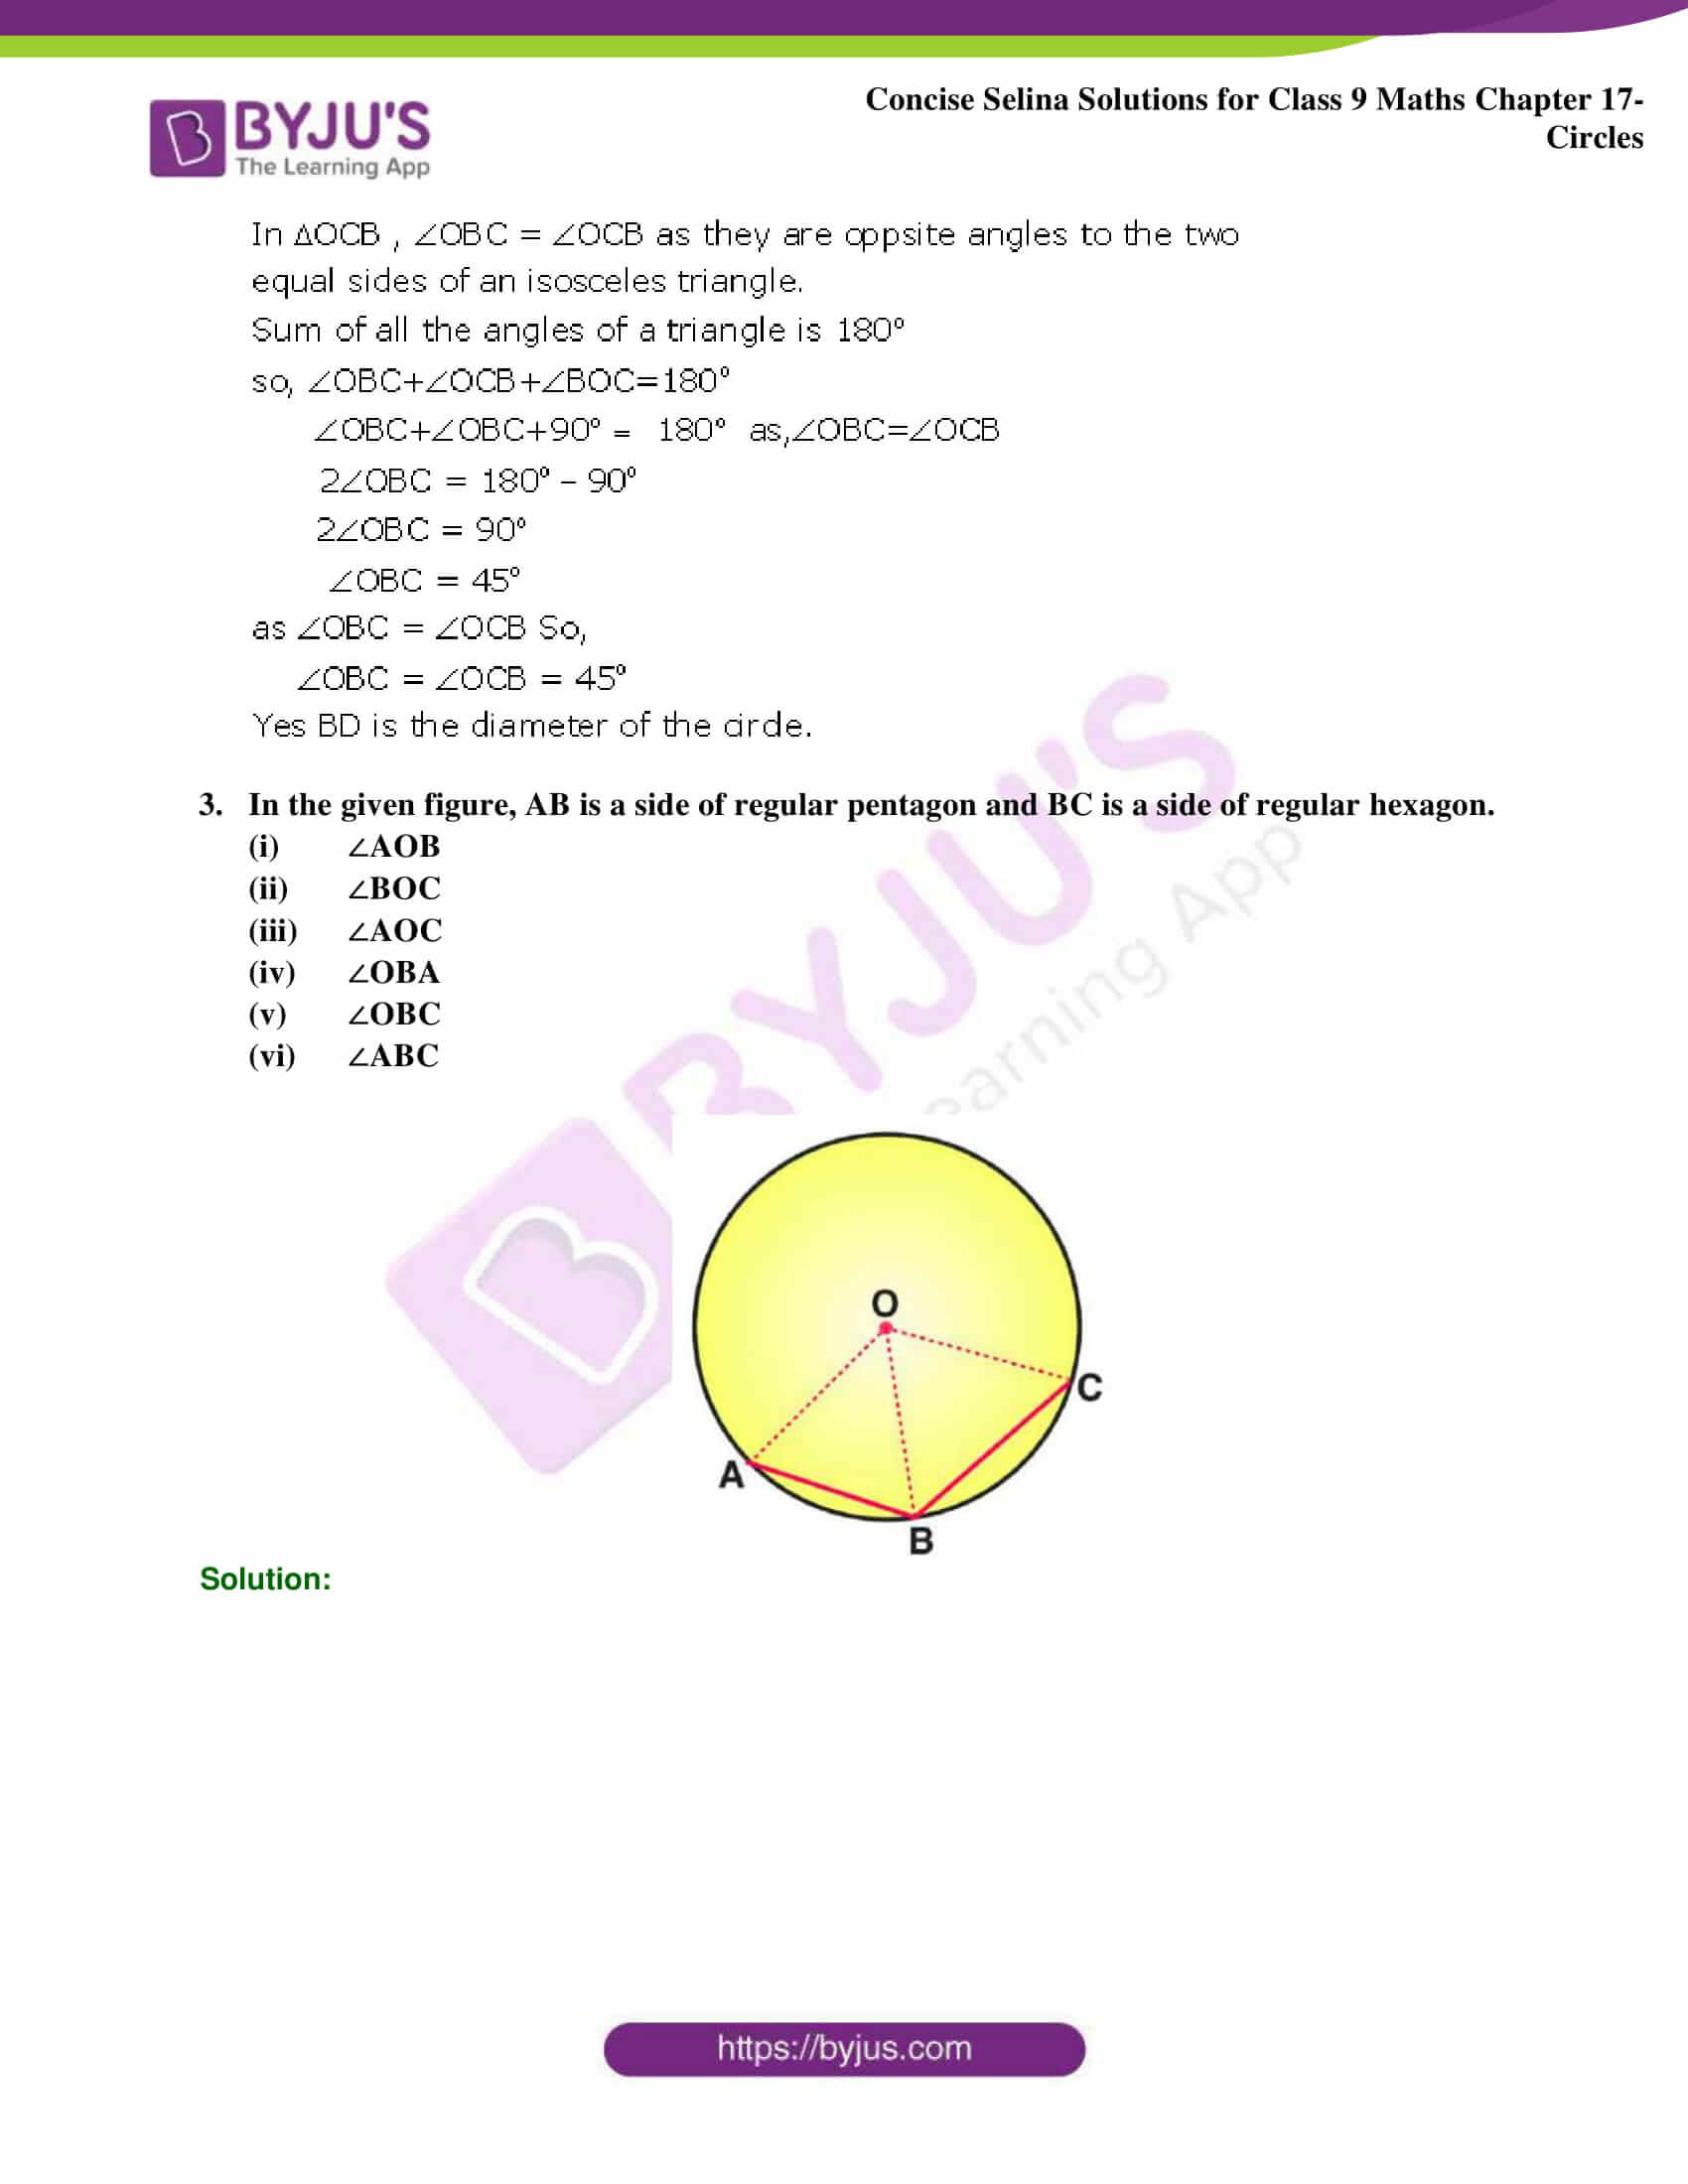 Concise Selina Solutions Class 9 Maths Chapter 17 Circles part 20